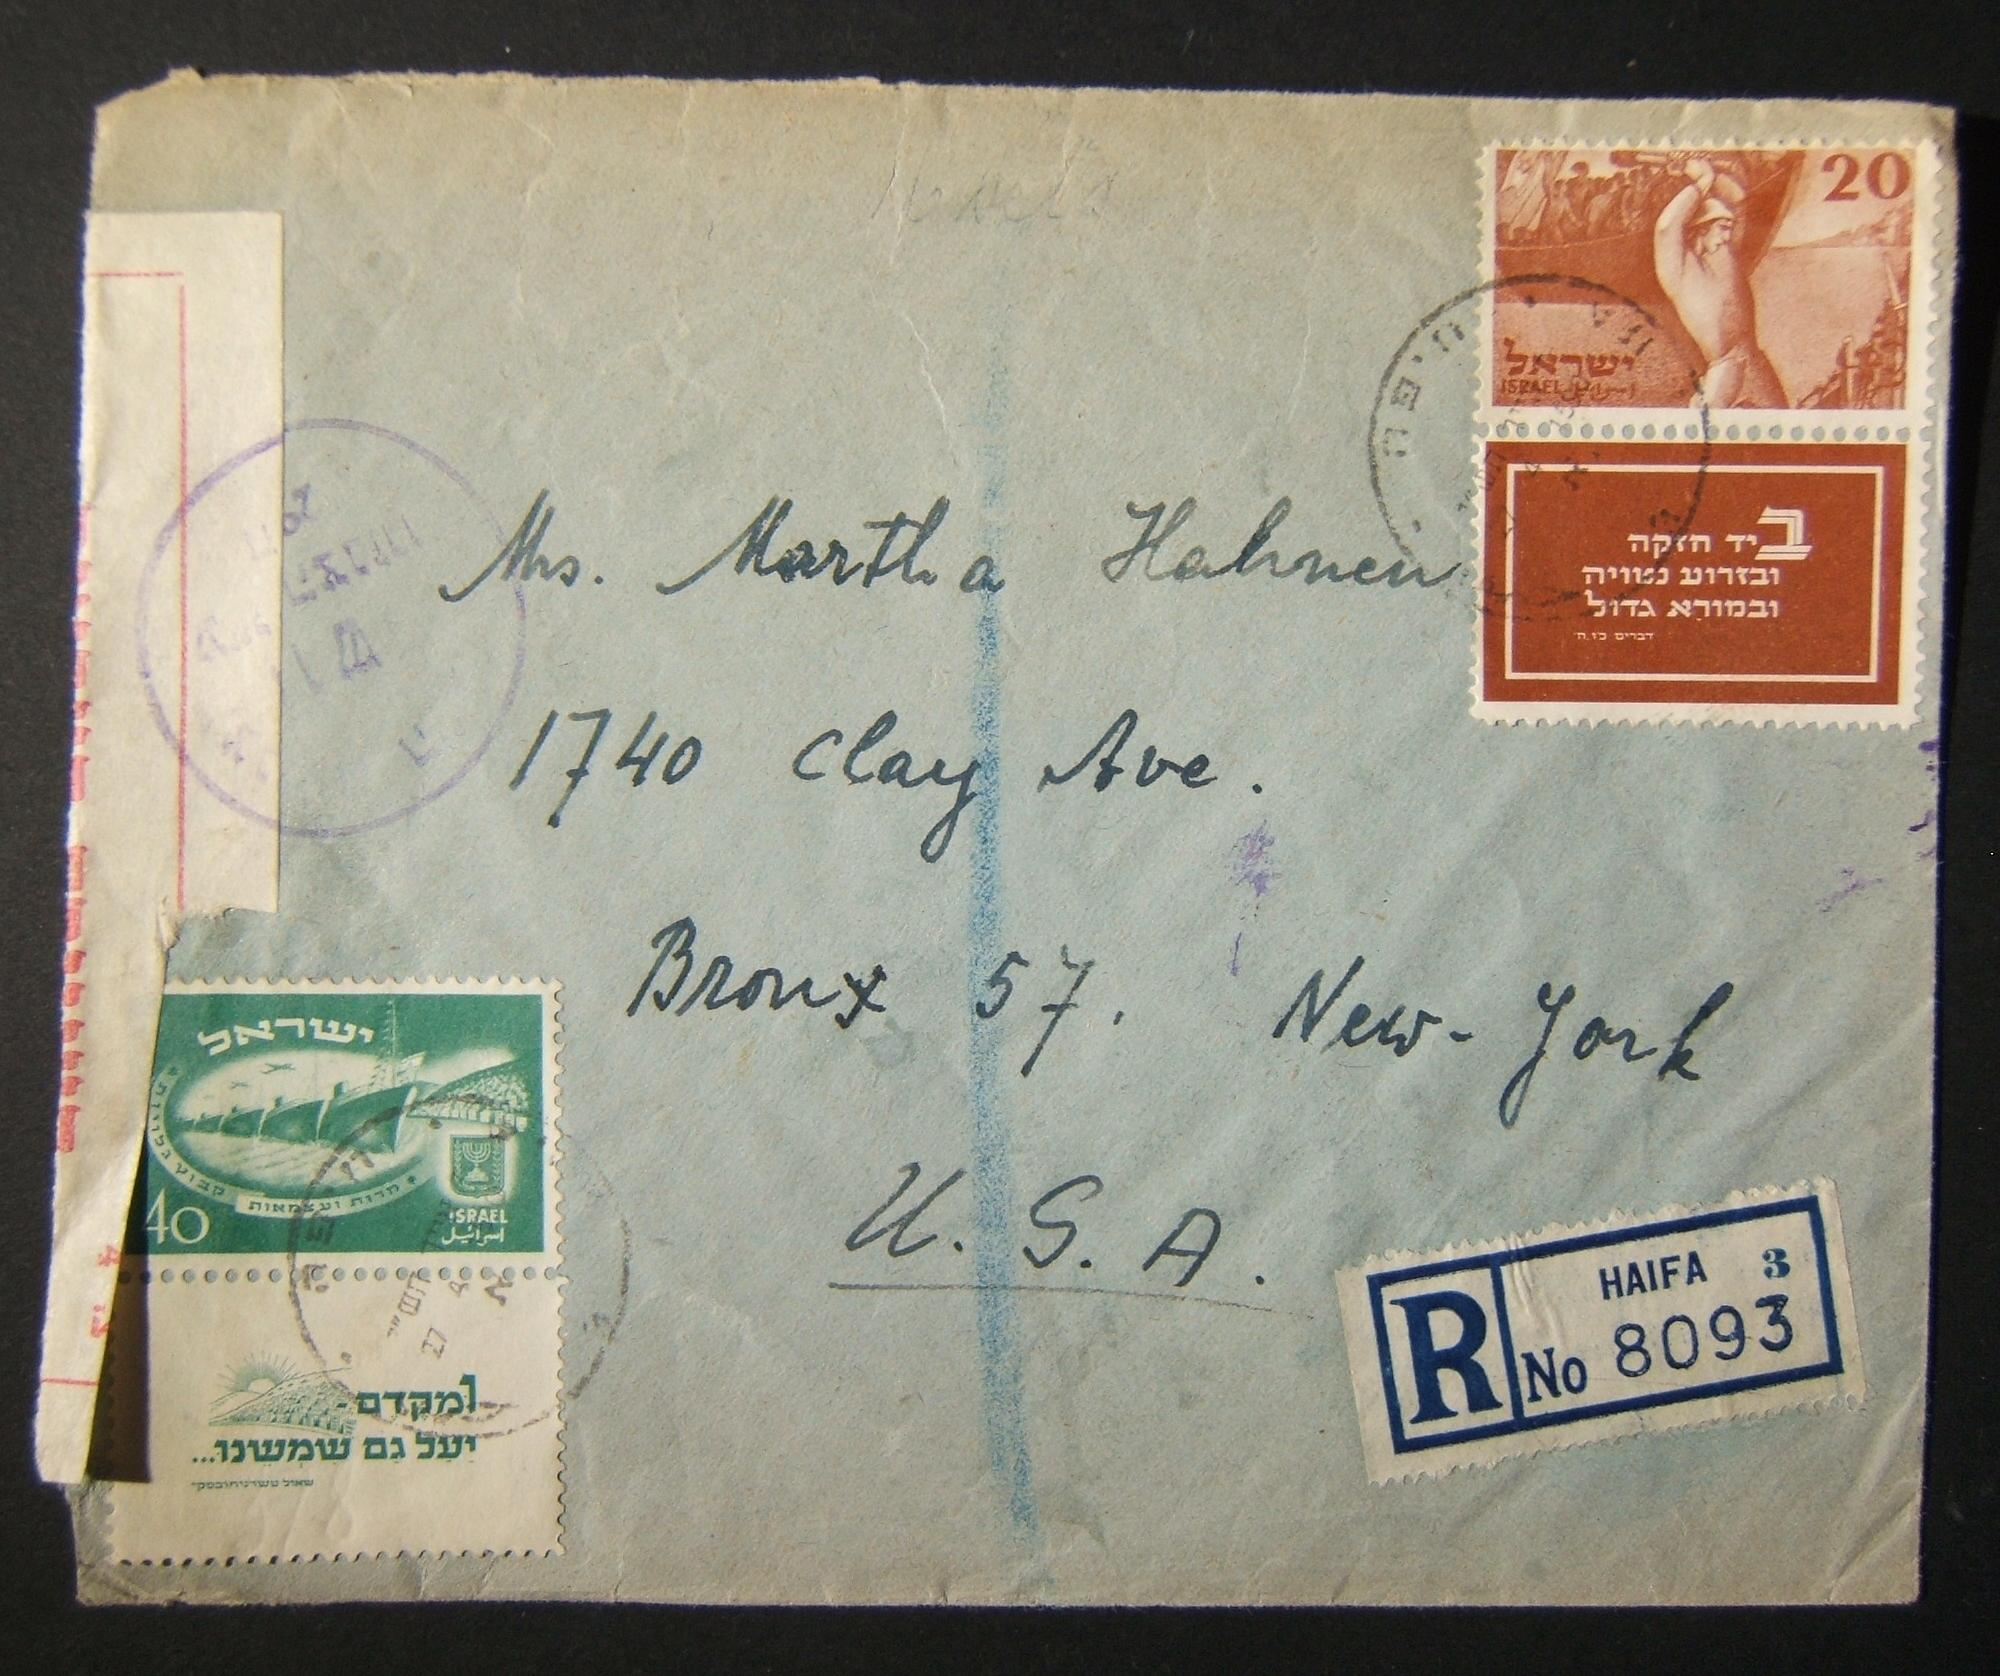 4/1950 surface mail from HAIFA to US using short-tabbed 20/40Pr Independence stamps